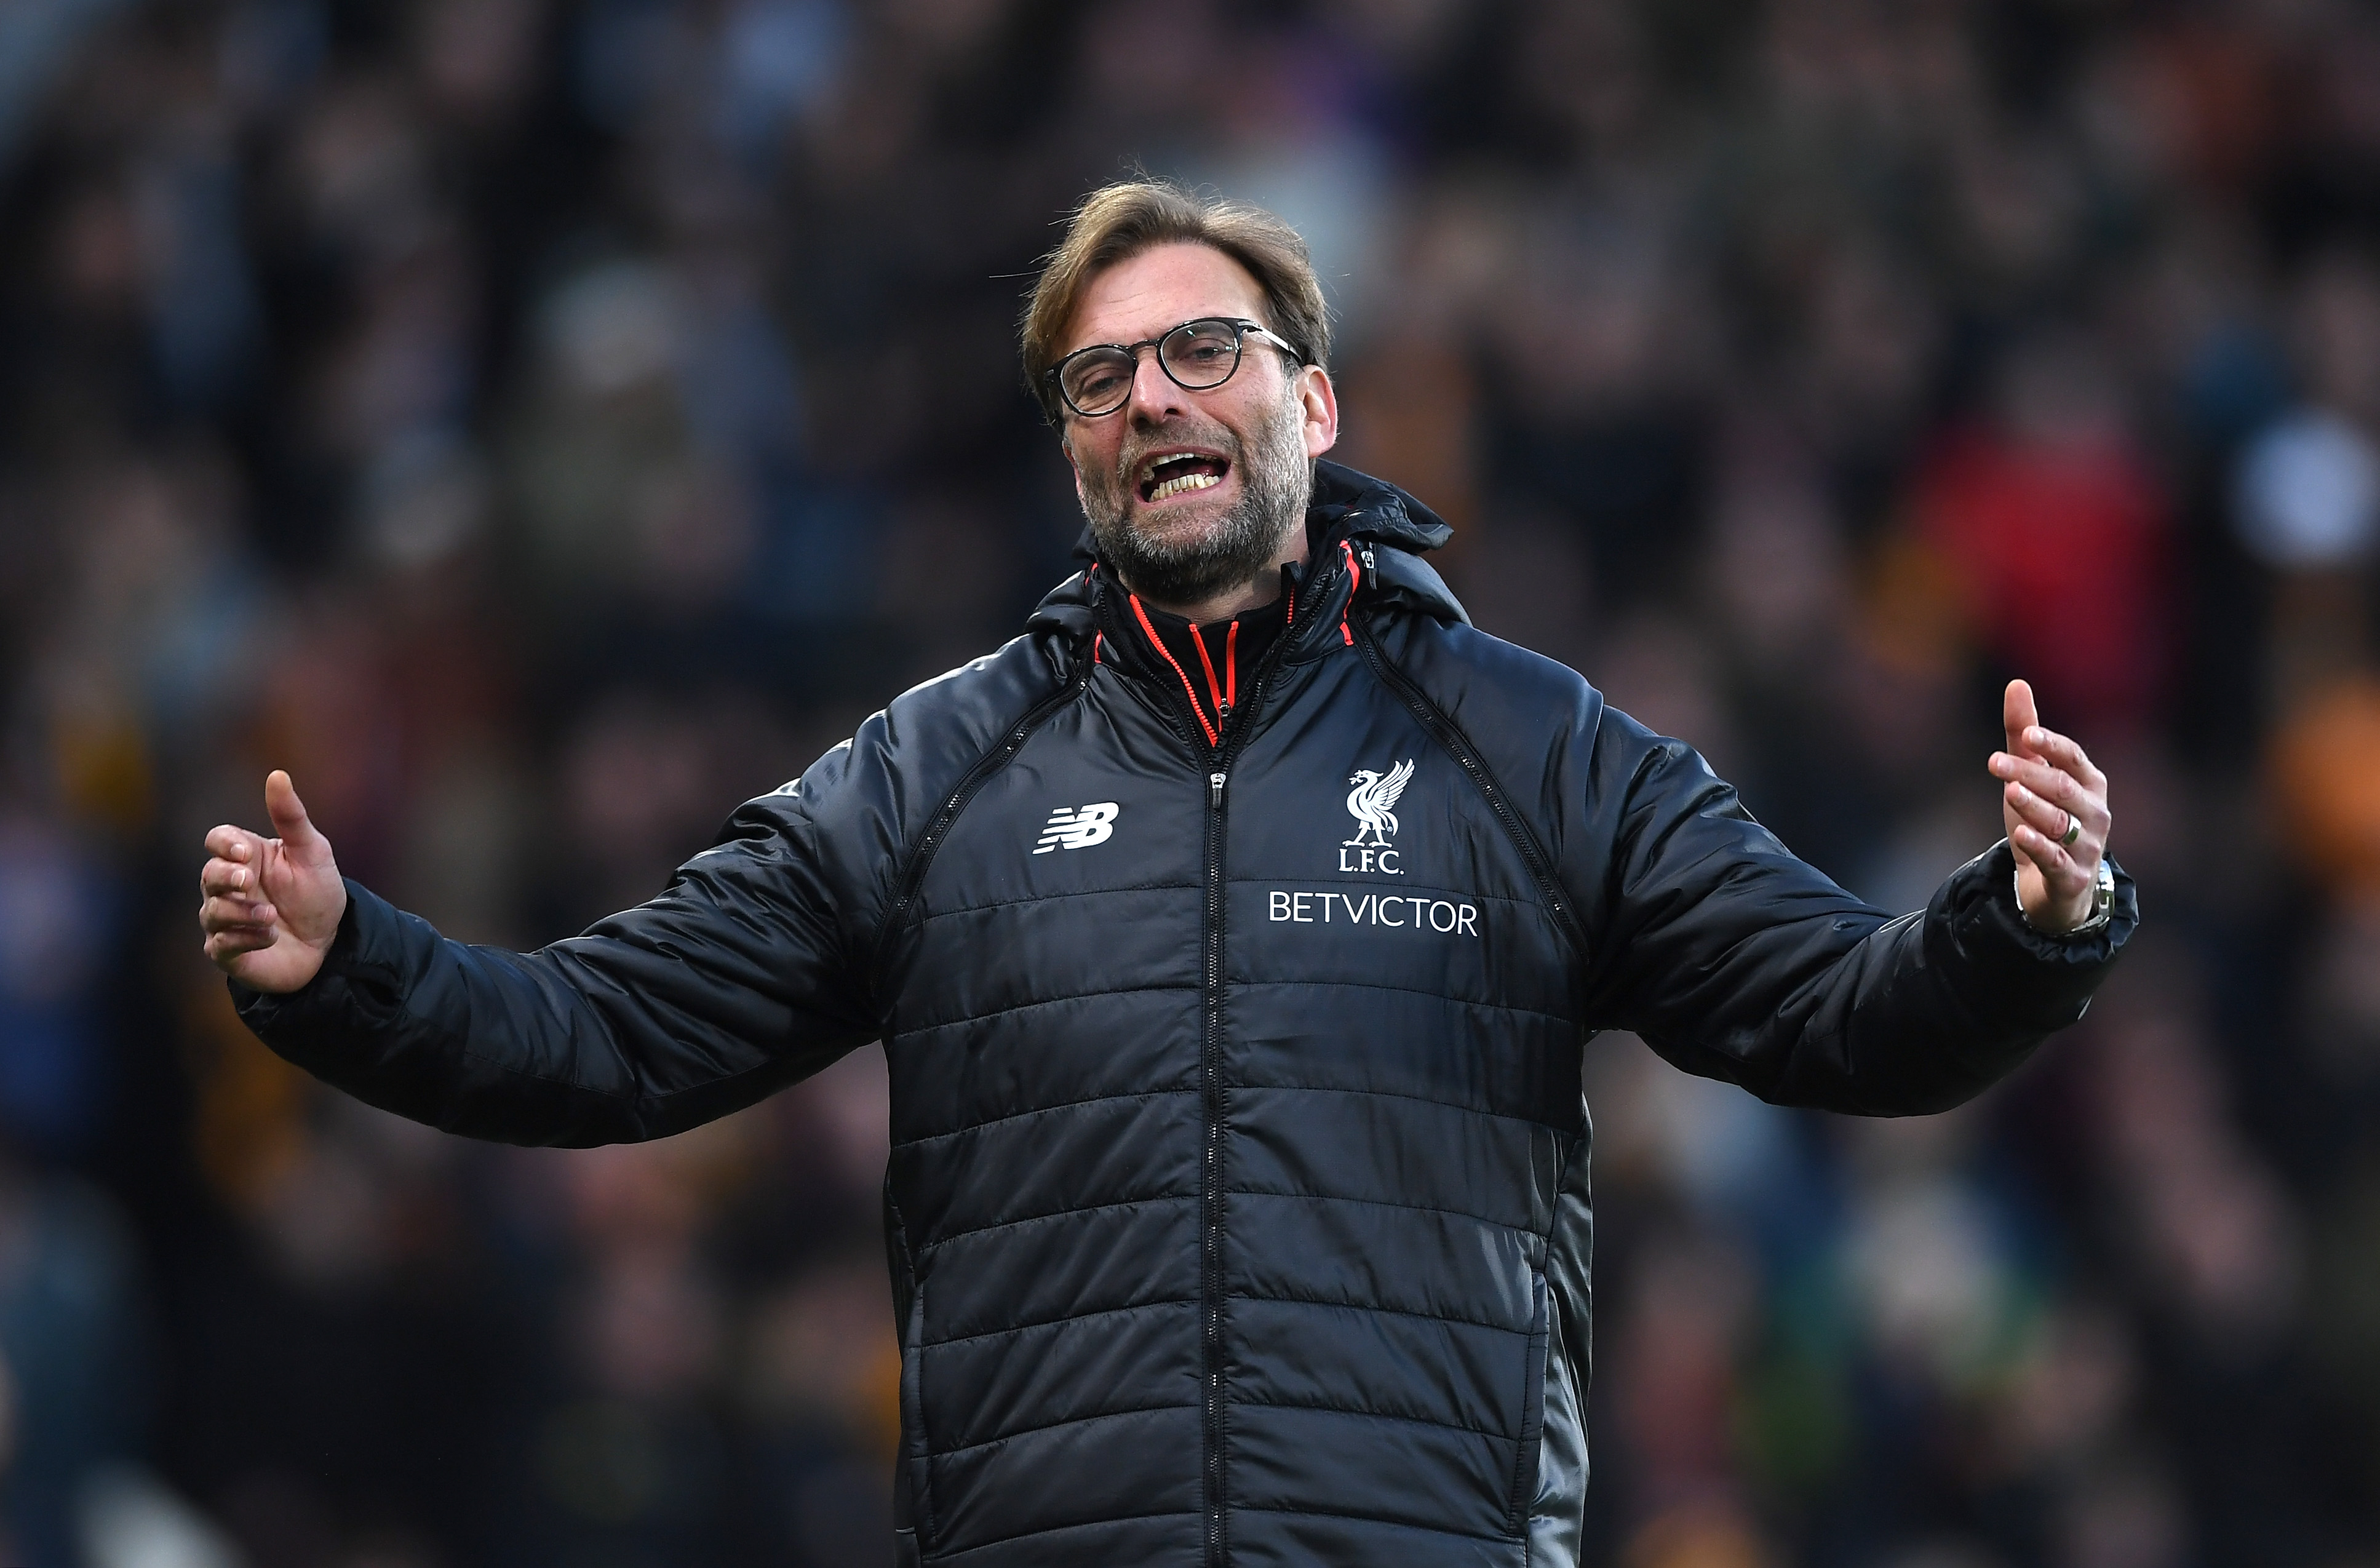 Is Jurgen Klopp going to be able to get Liverpool back on track?